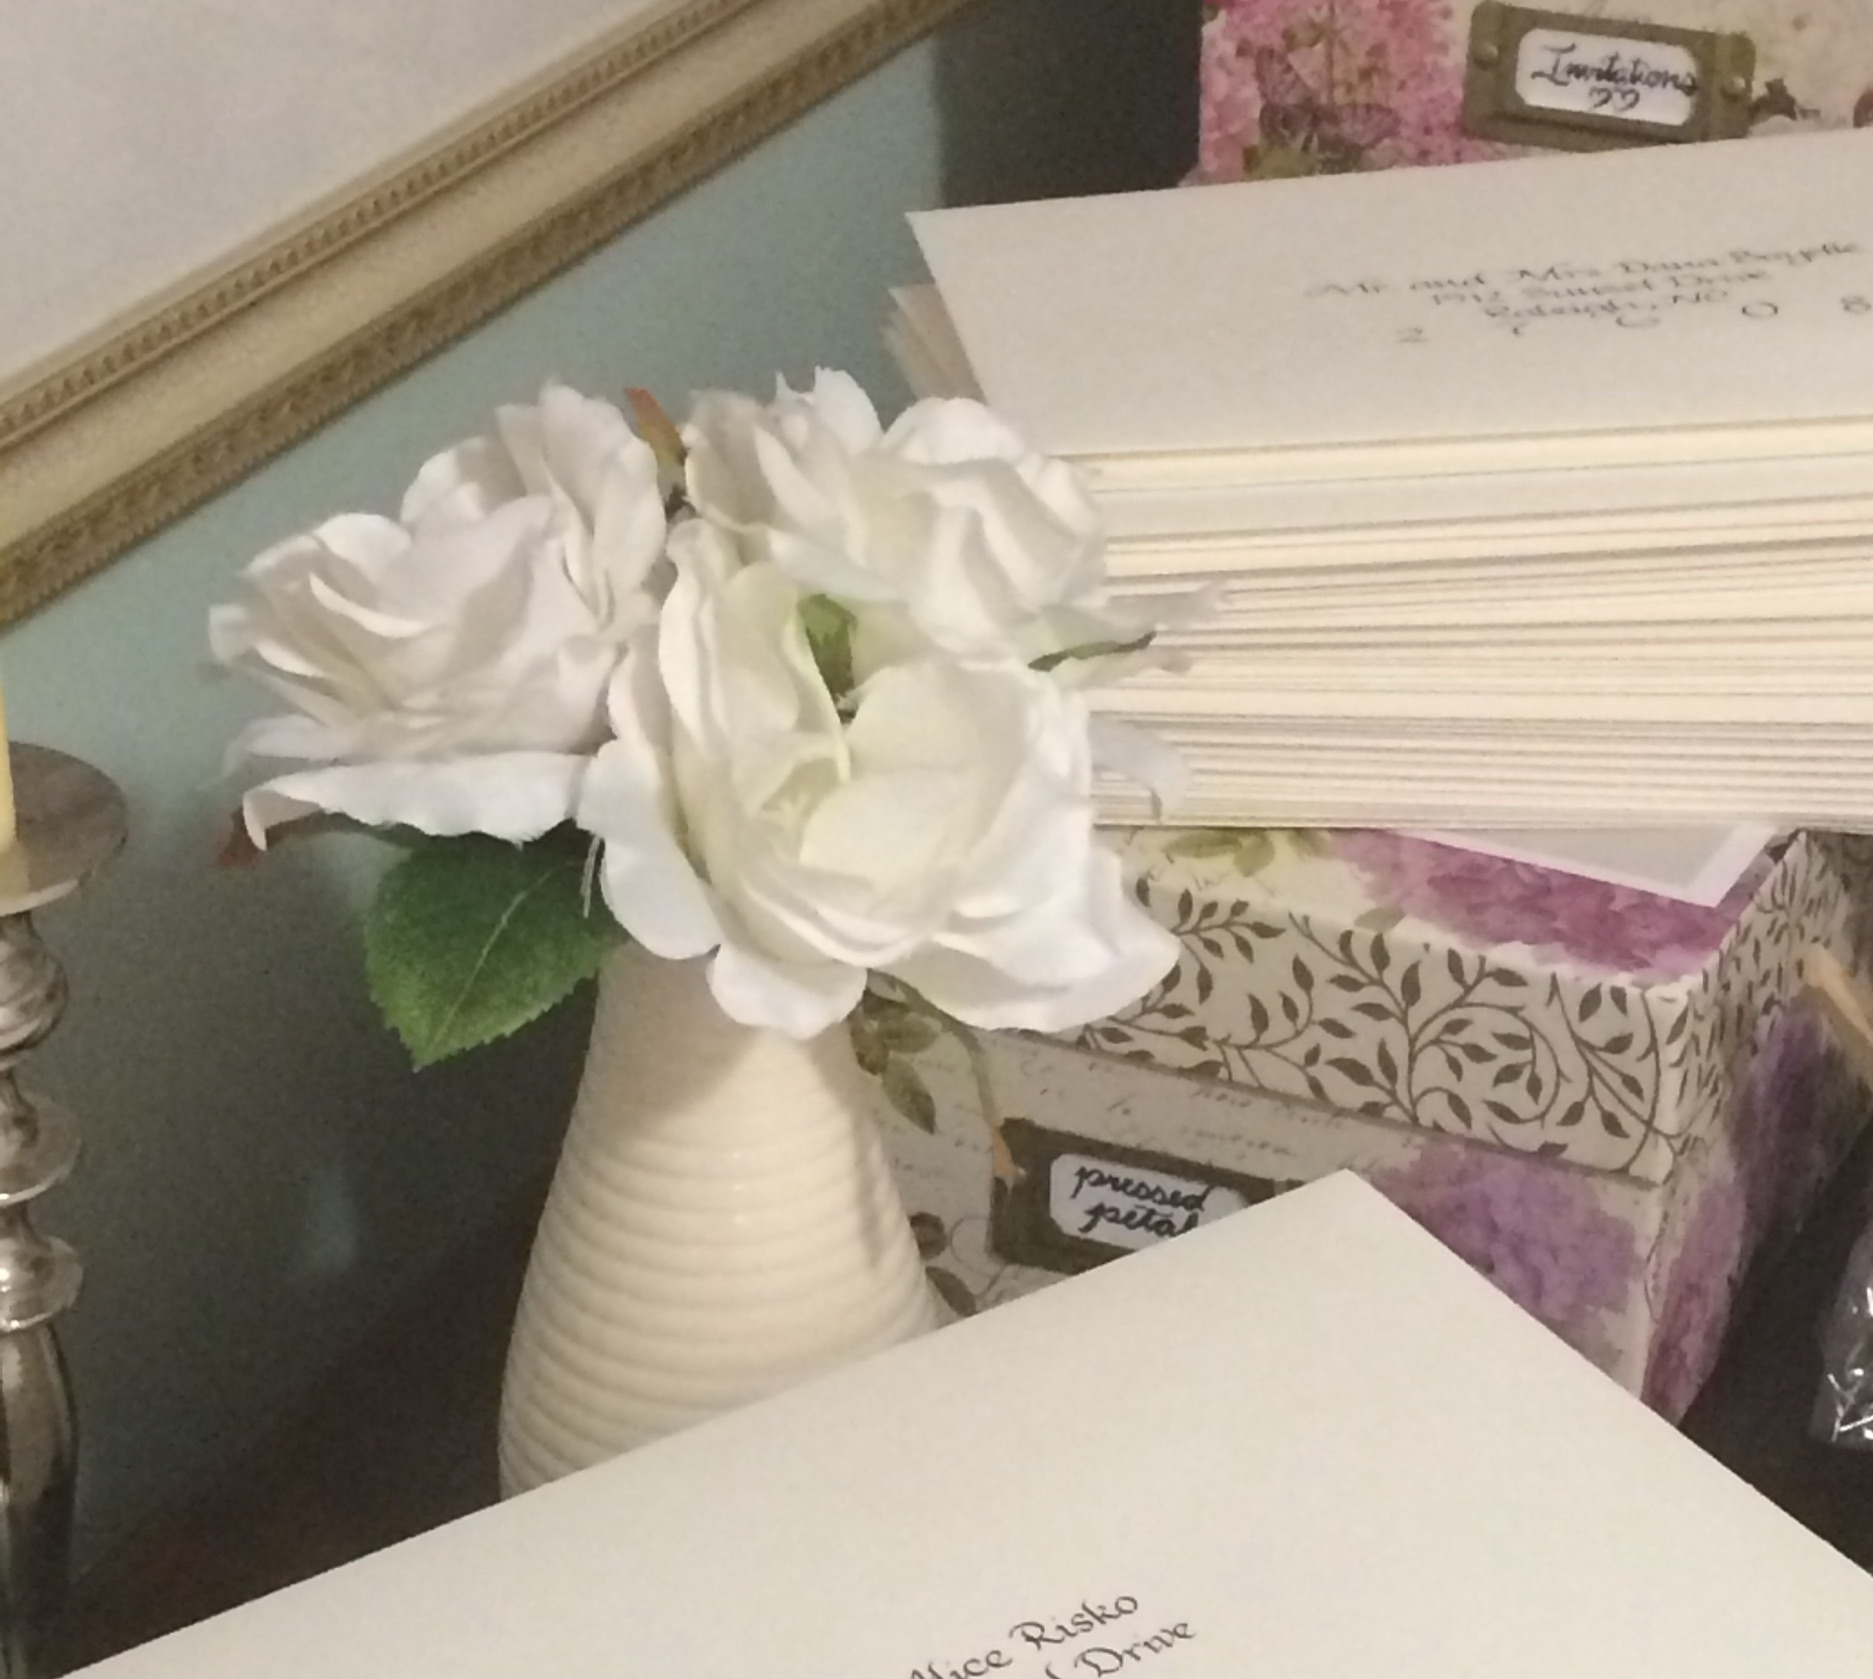 Piles of work, piling up. (Credit: Raleigh Calligraphy & Design)